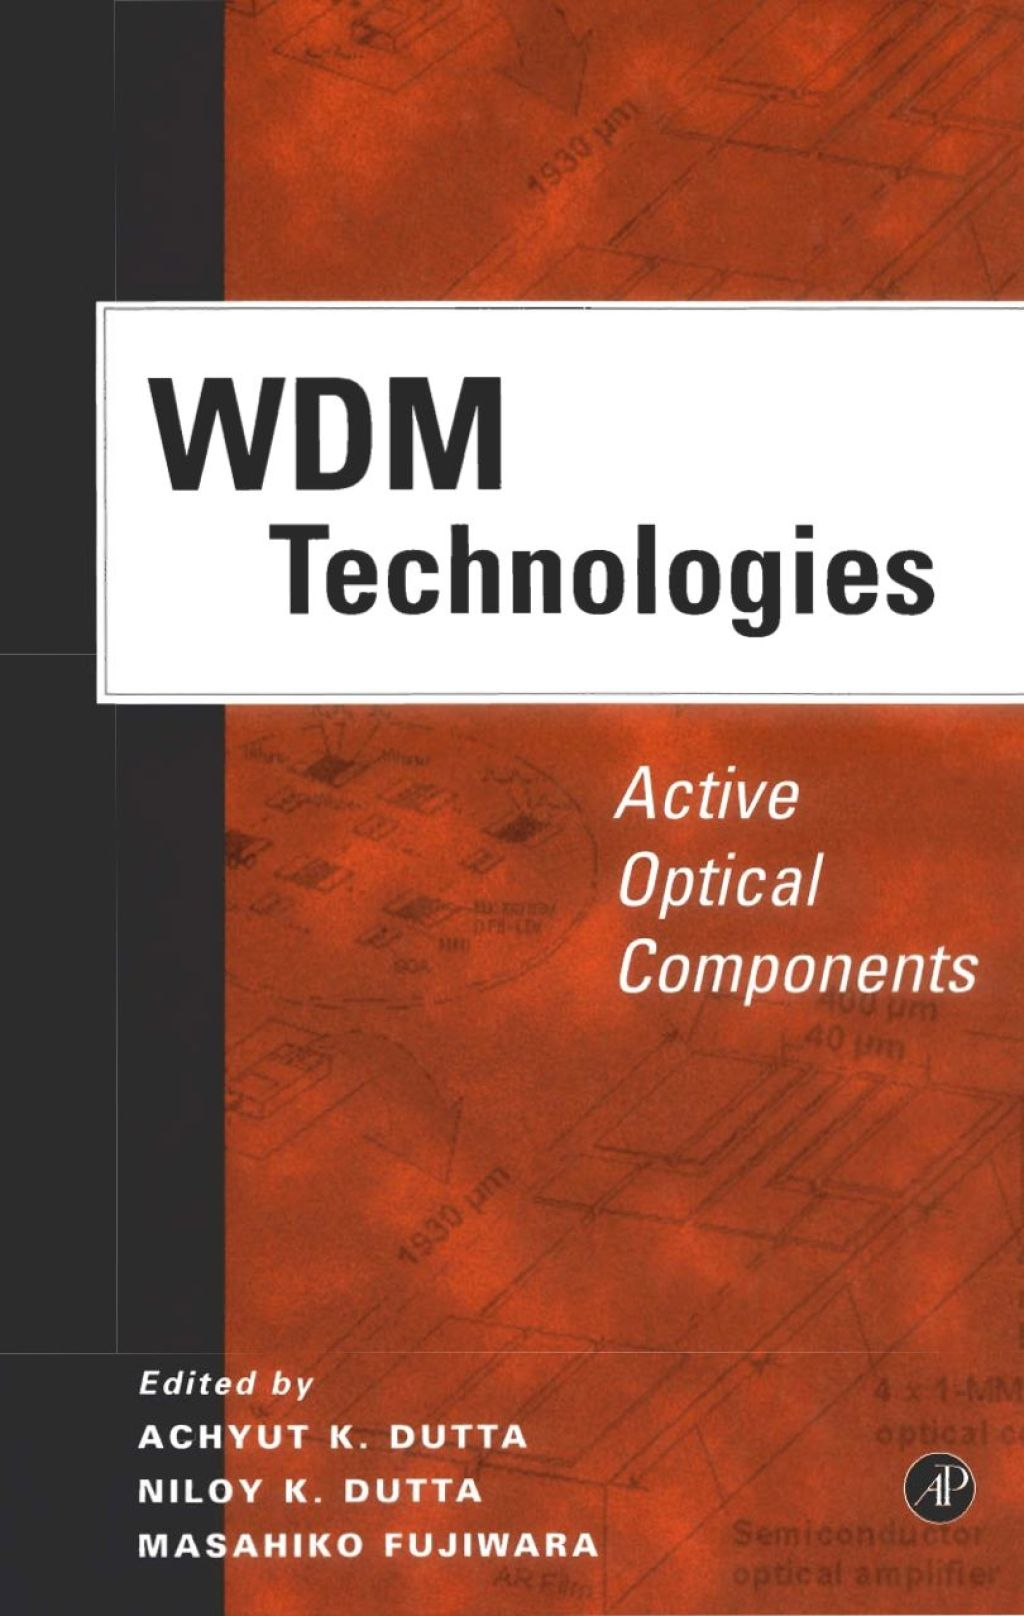 WDM Technologies: Active Optical Components: Active Optical Components (ebook) eBooks